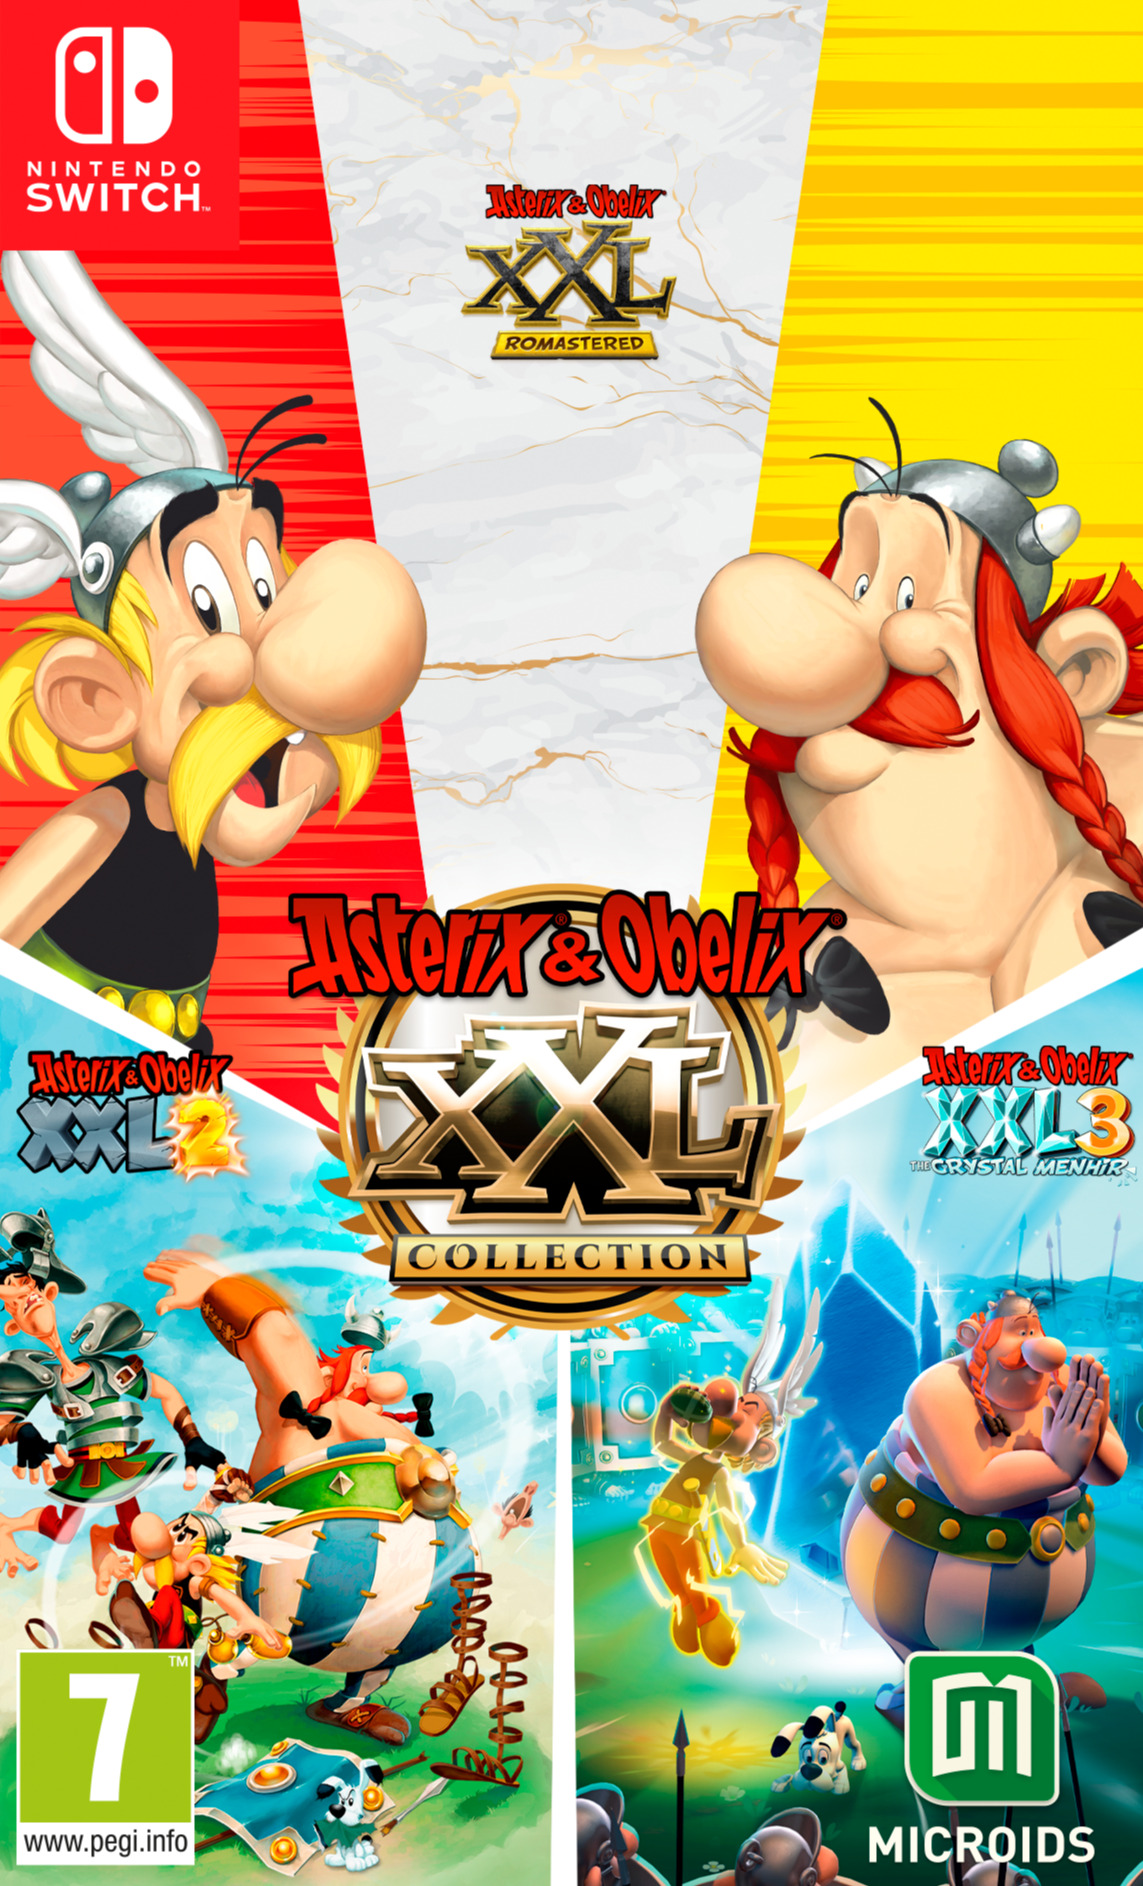 Asterix & Obelix XXL Collection (SWITCH)